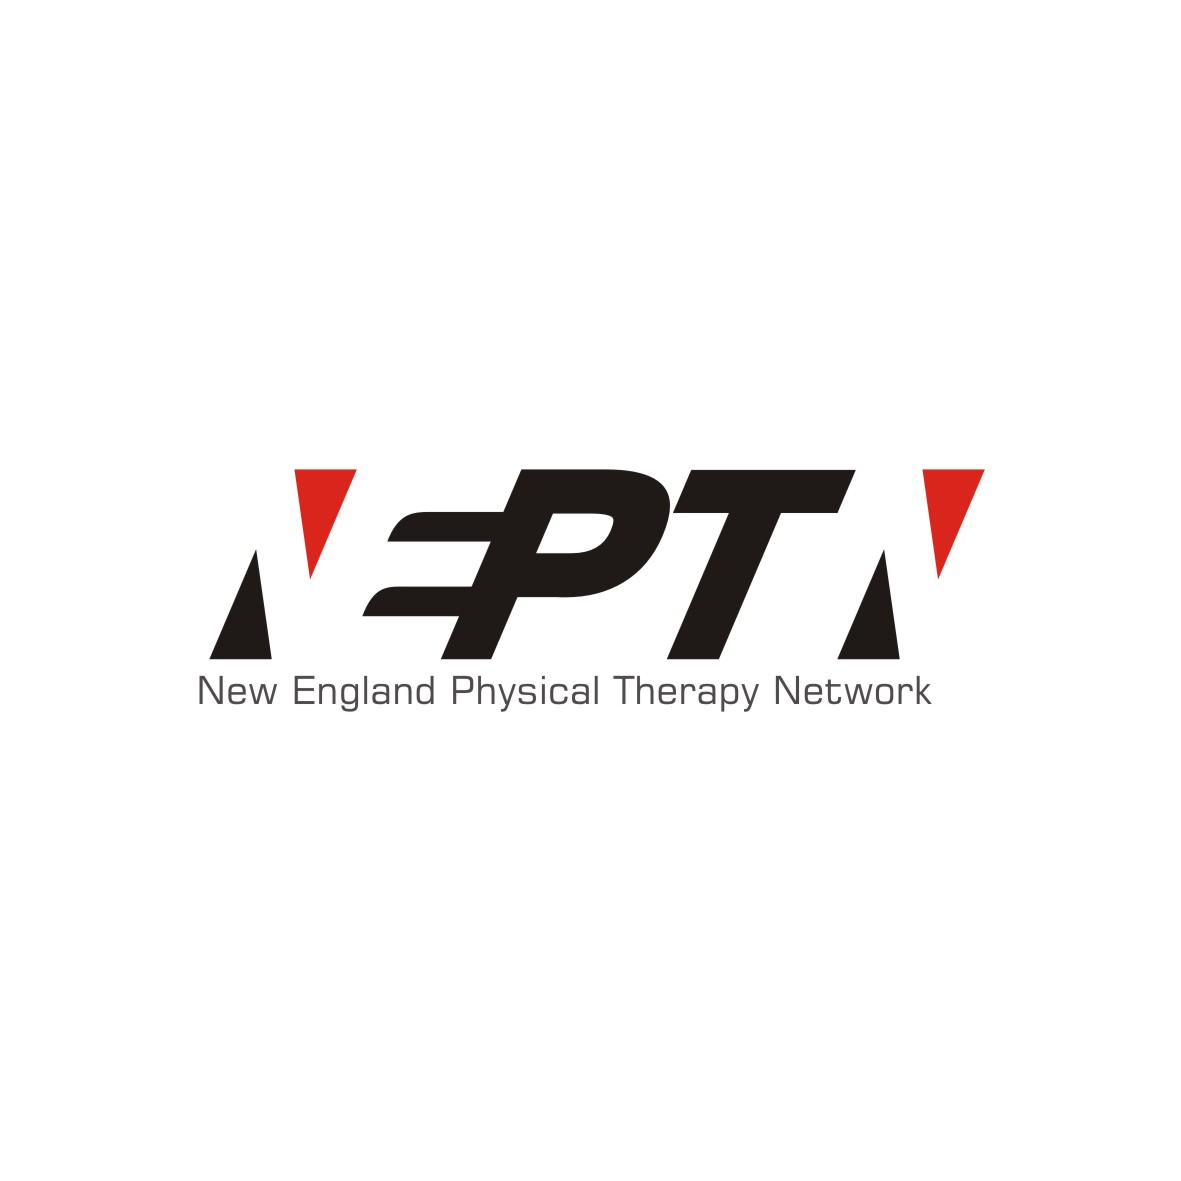 Logo Design by arteo_design - Entry No. 74 in the Logo Design Contest Fun Logo Design for NEPTN - New England Physical Therapy Network.